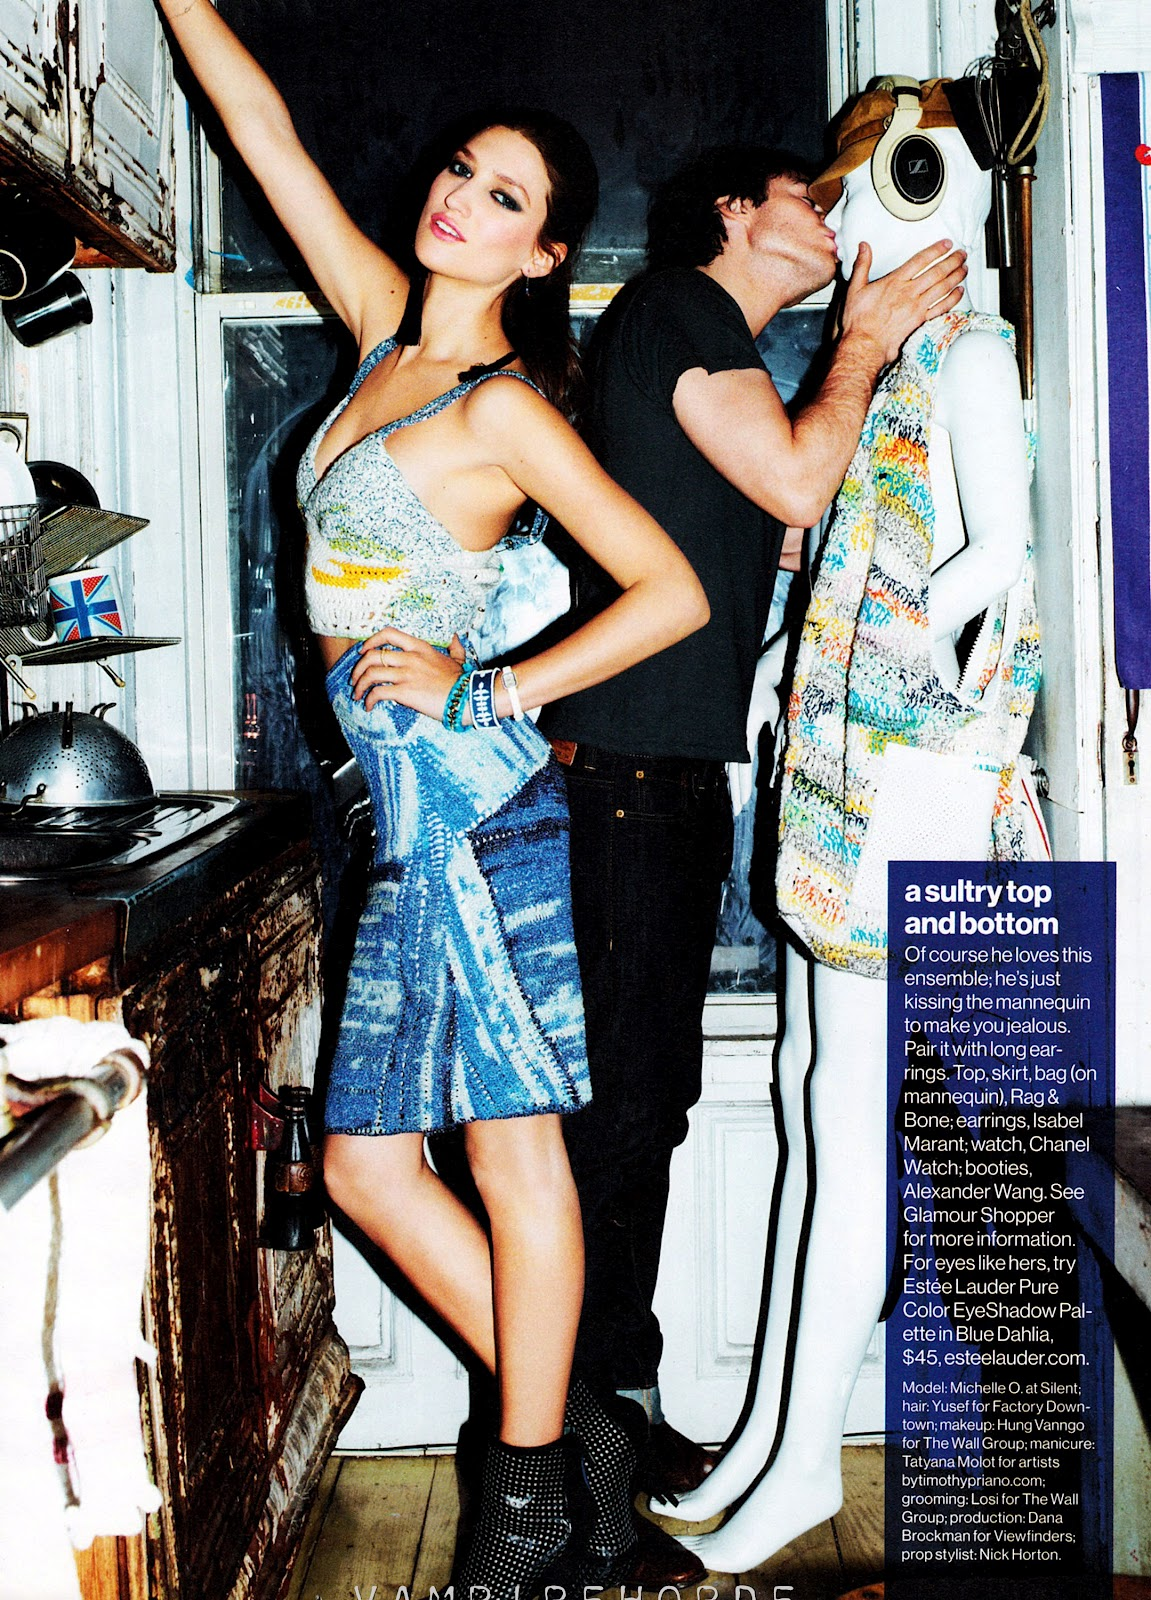 http://2.bp.blogspot.com/-4HeaeodI8l8/T1I023lssfI/AAAAAAAAJsM/iyJLLK6XgZQ/s1600/fashion_scans_remastered-michele_ouellette_ian_somerhalder-glamour_usa-april_2012-scanned_by_vampirehorde-hq-6.jpg